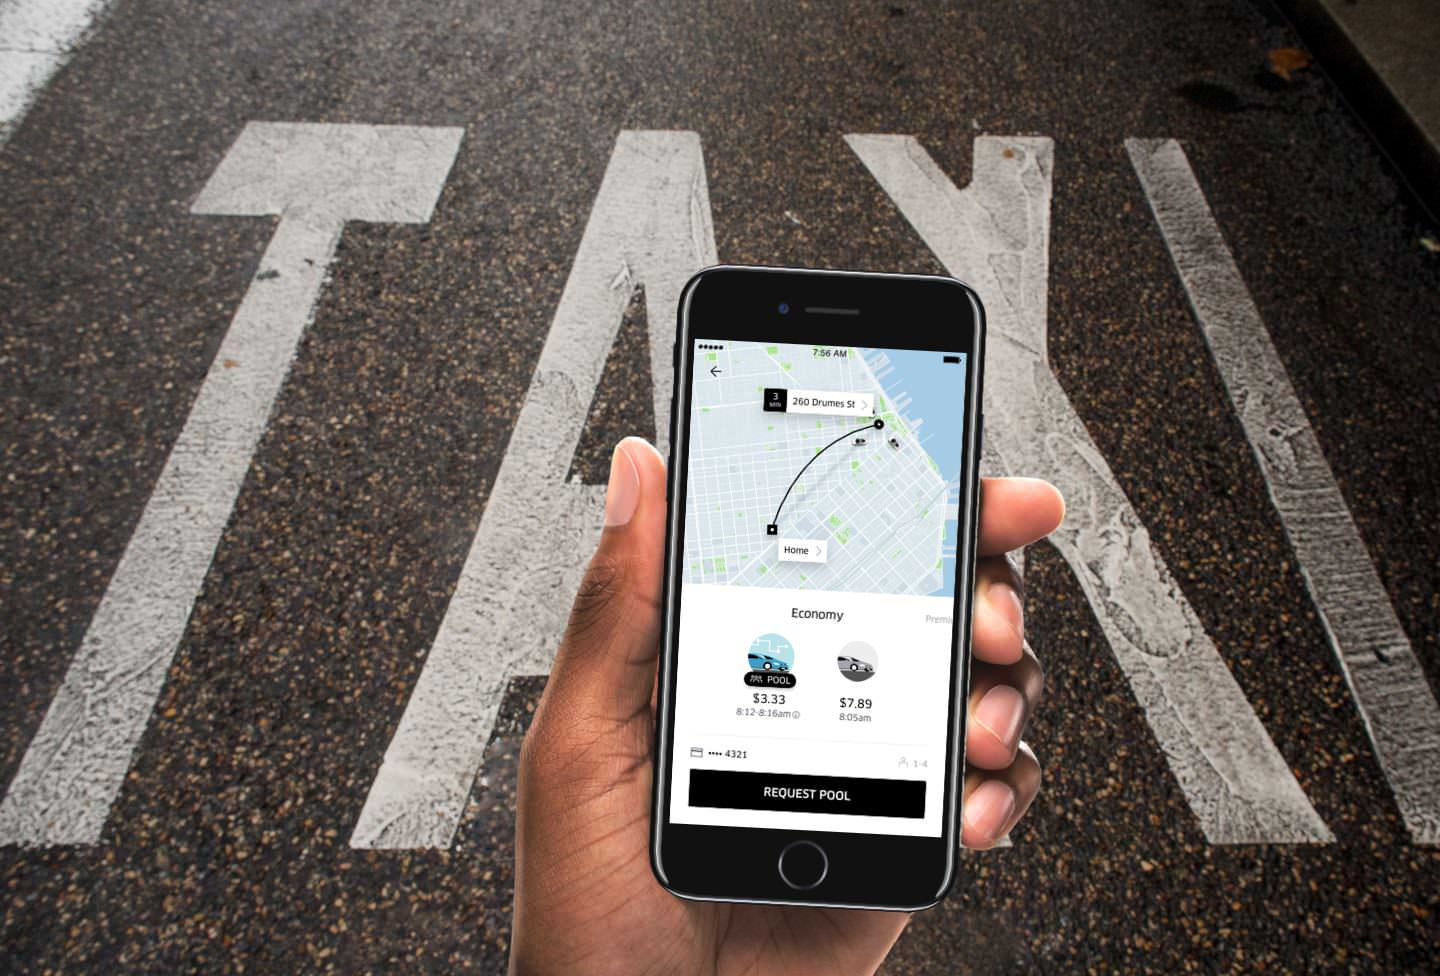 Uber for X: Business Model's Issue of On Demand Services